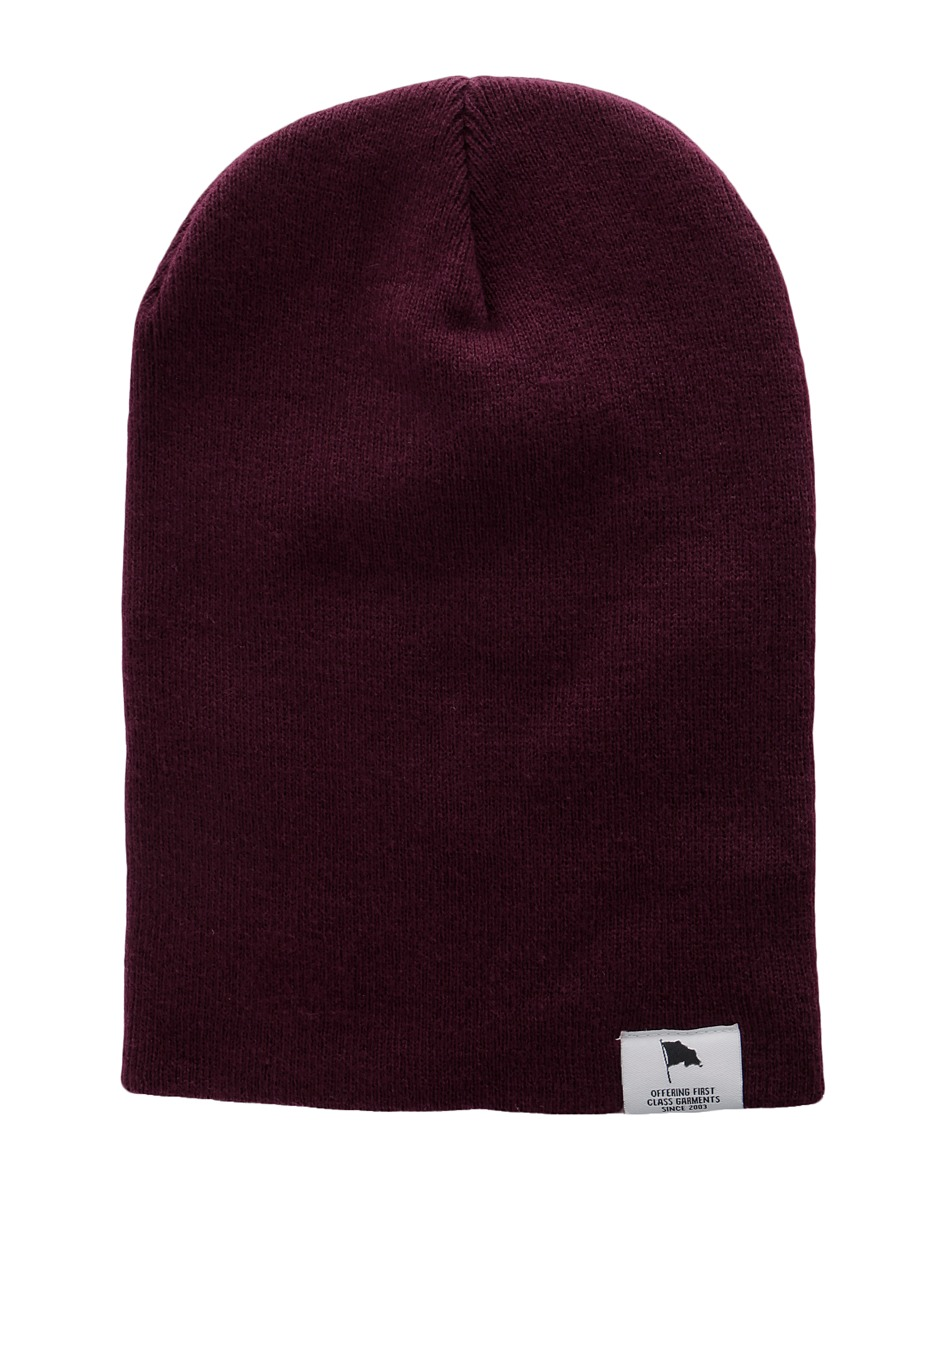 Wemoto - North Burgundy - Beanie - Impericon.com UK 025cd58ee8b